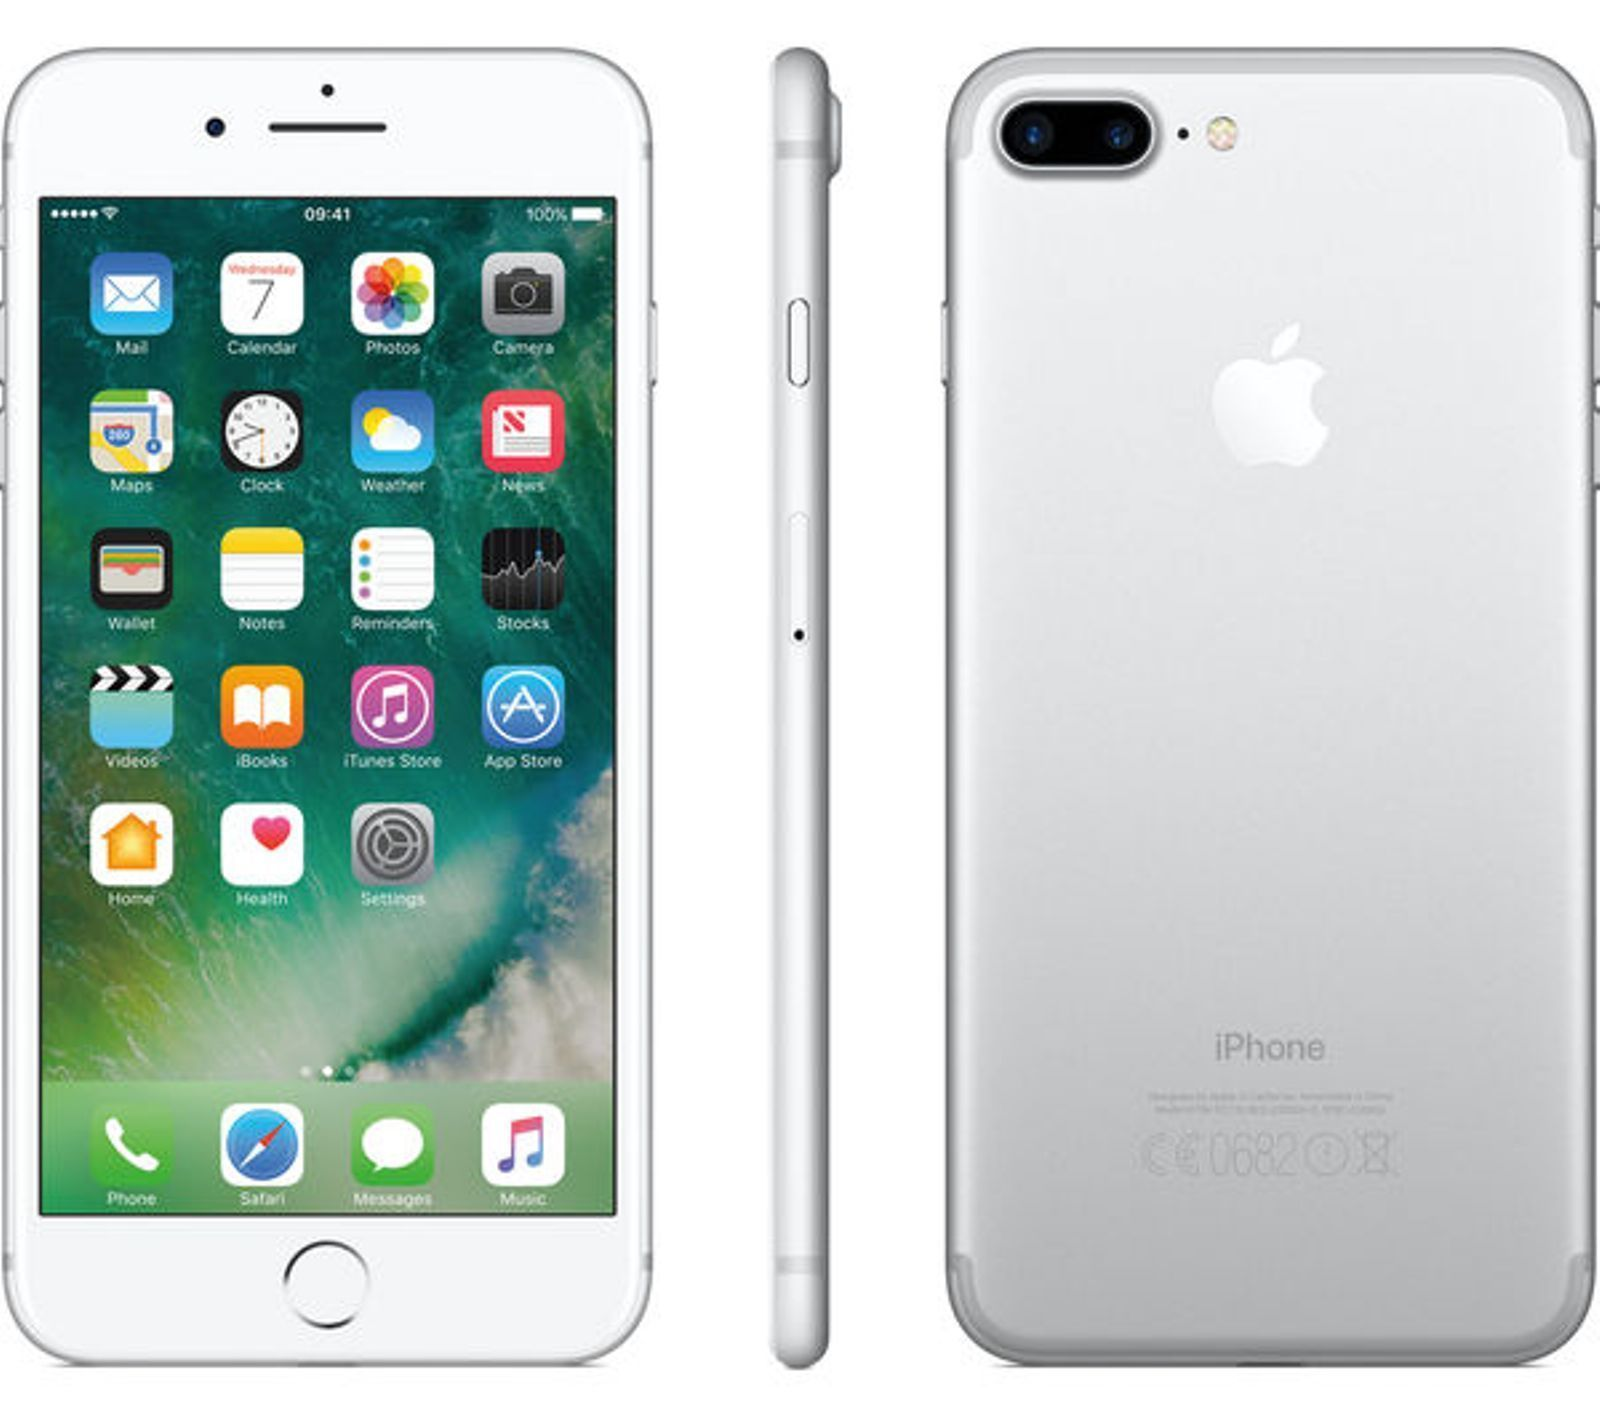 Apple Iphone7 Plus Silver 128gb Brand New At T H20 Cricket